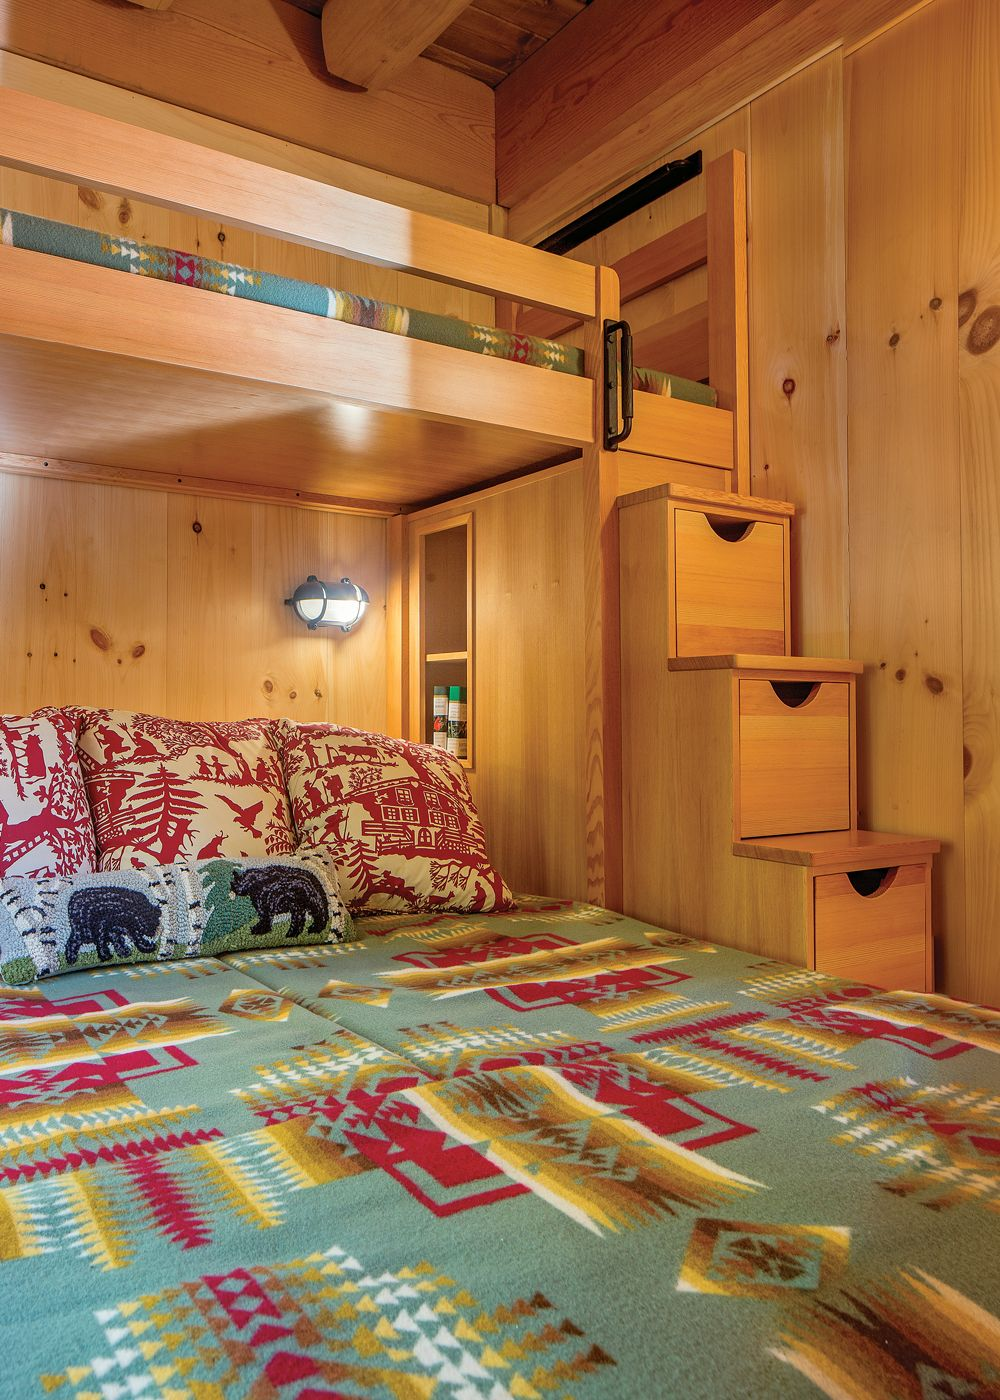 Take A Look Inside This Fairy Tale Log Home Cottage Small House Interior Design Small Room Design Beautiful Small Homes